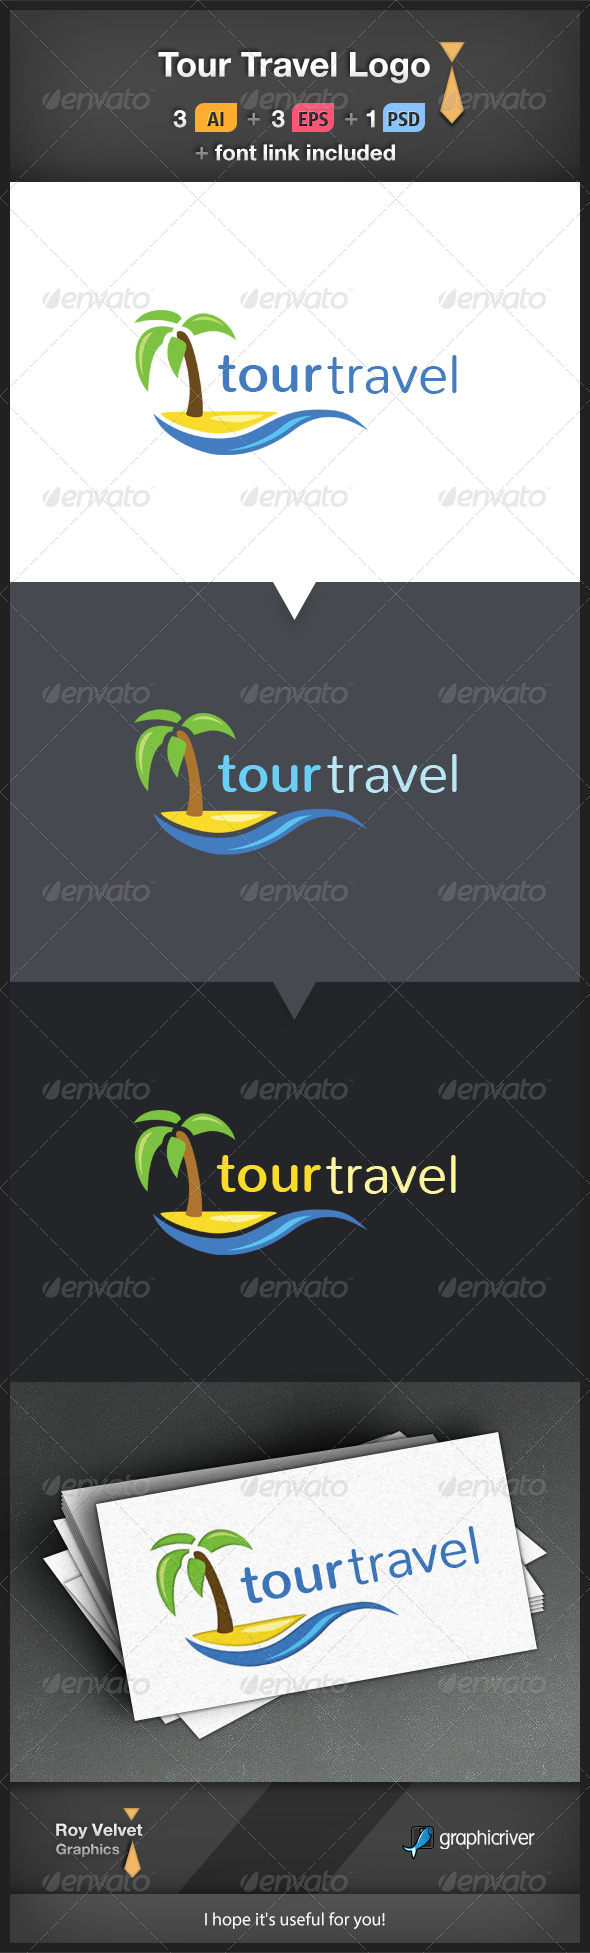 GraphicRiver Tour Travel Logo 6249974